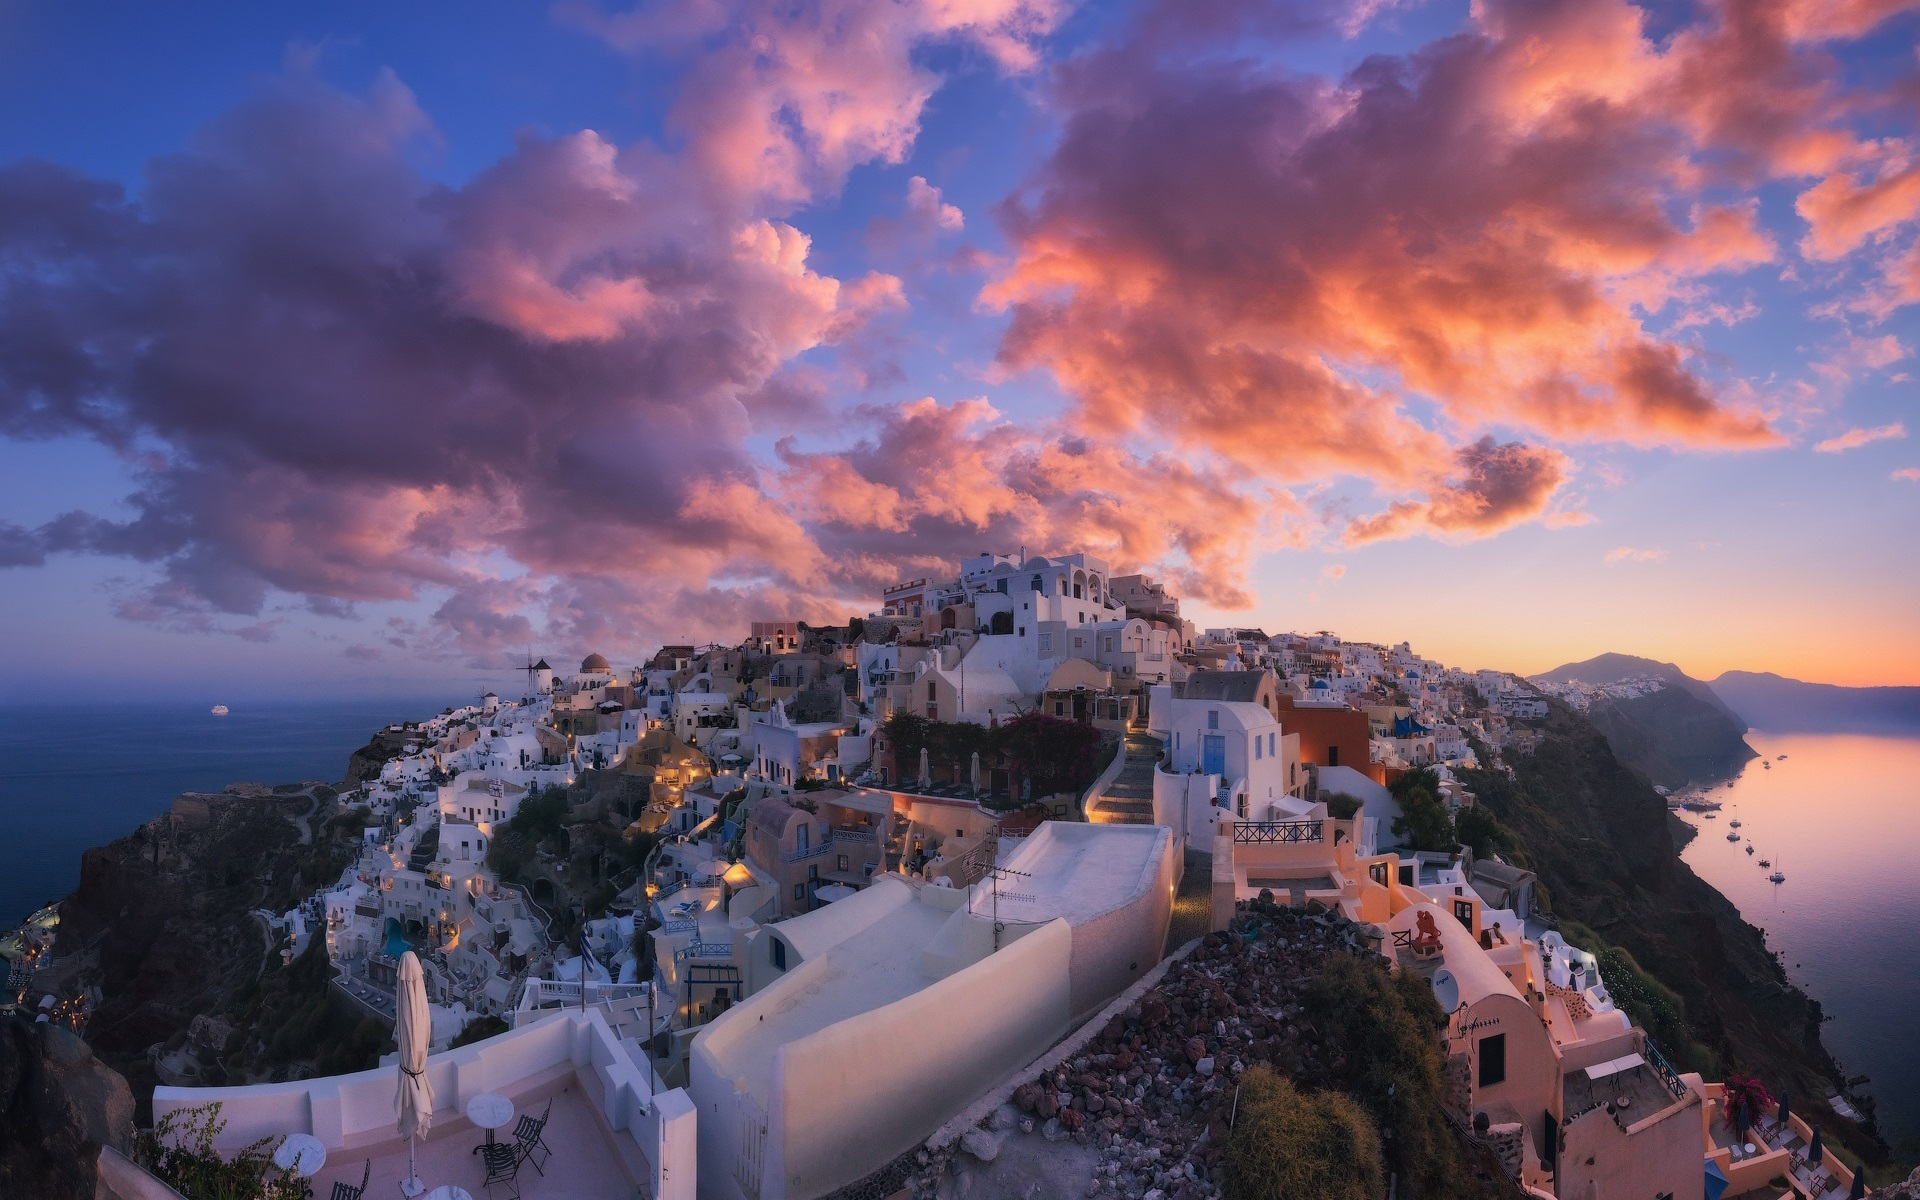 Wallpaper Santorini Greece city dusk clouds 1920x1200 HD 1920x1200